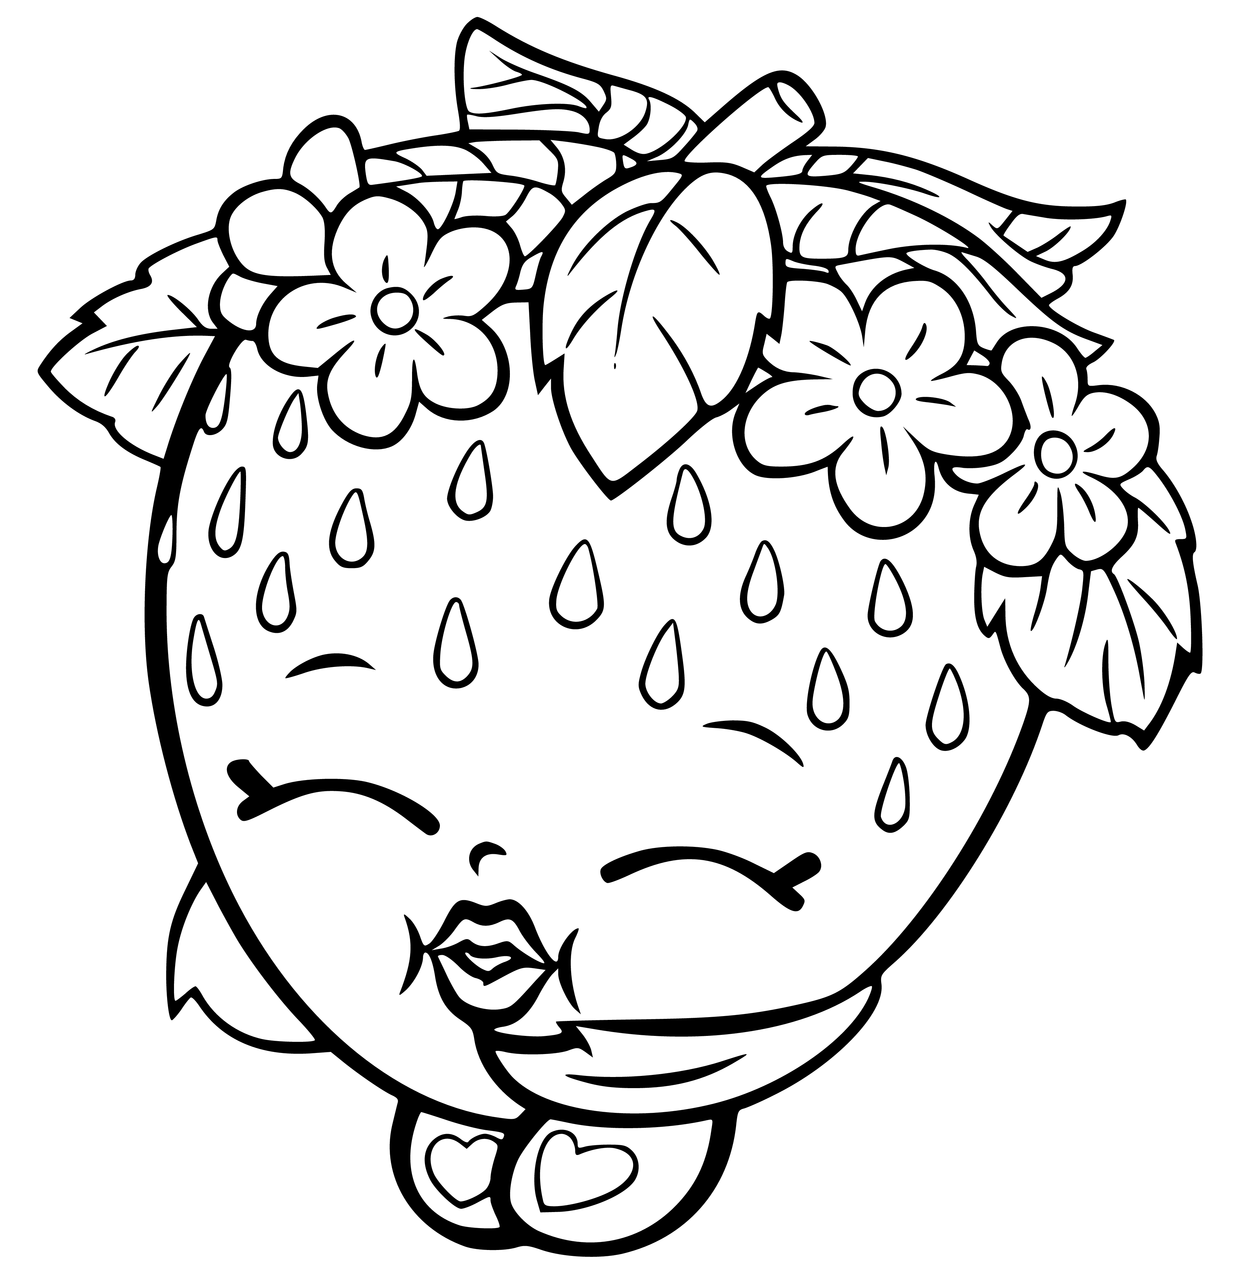 kids drawings for colouring free printable elsa coloring pages for kids best drawings for kids colouring